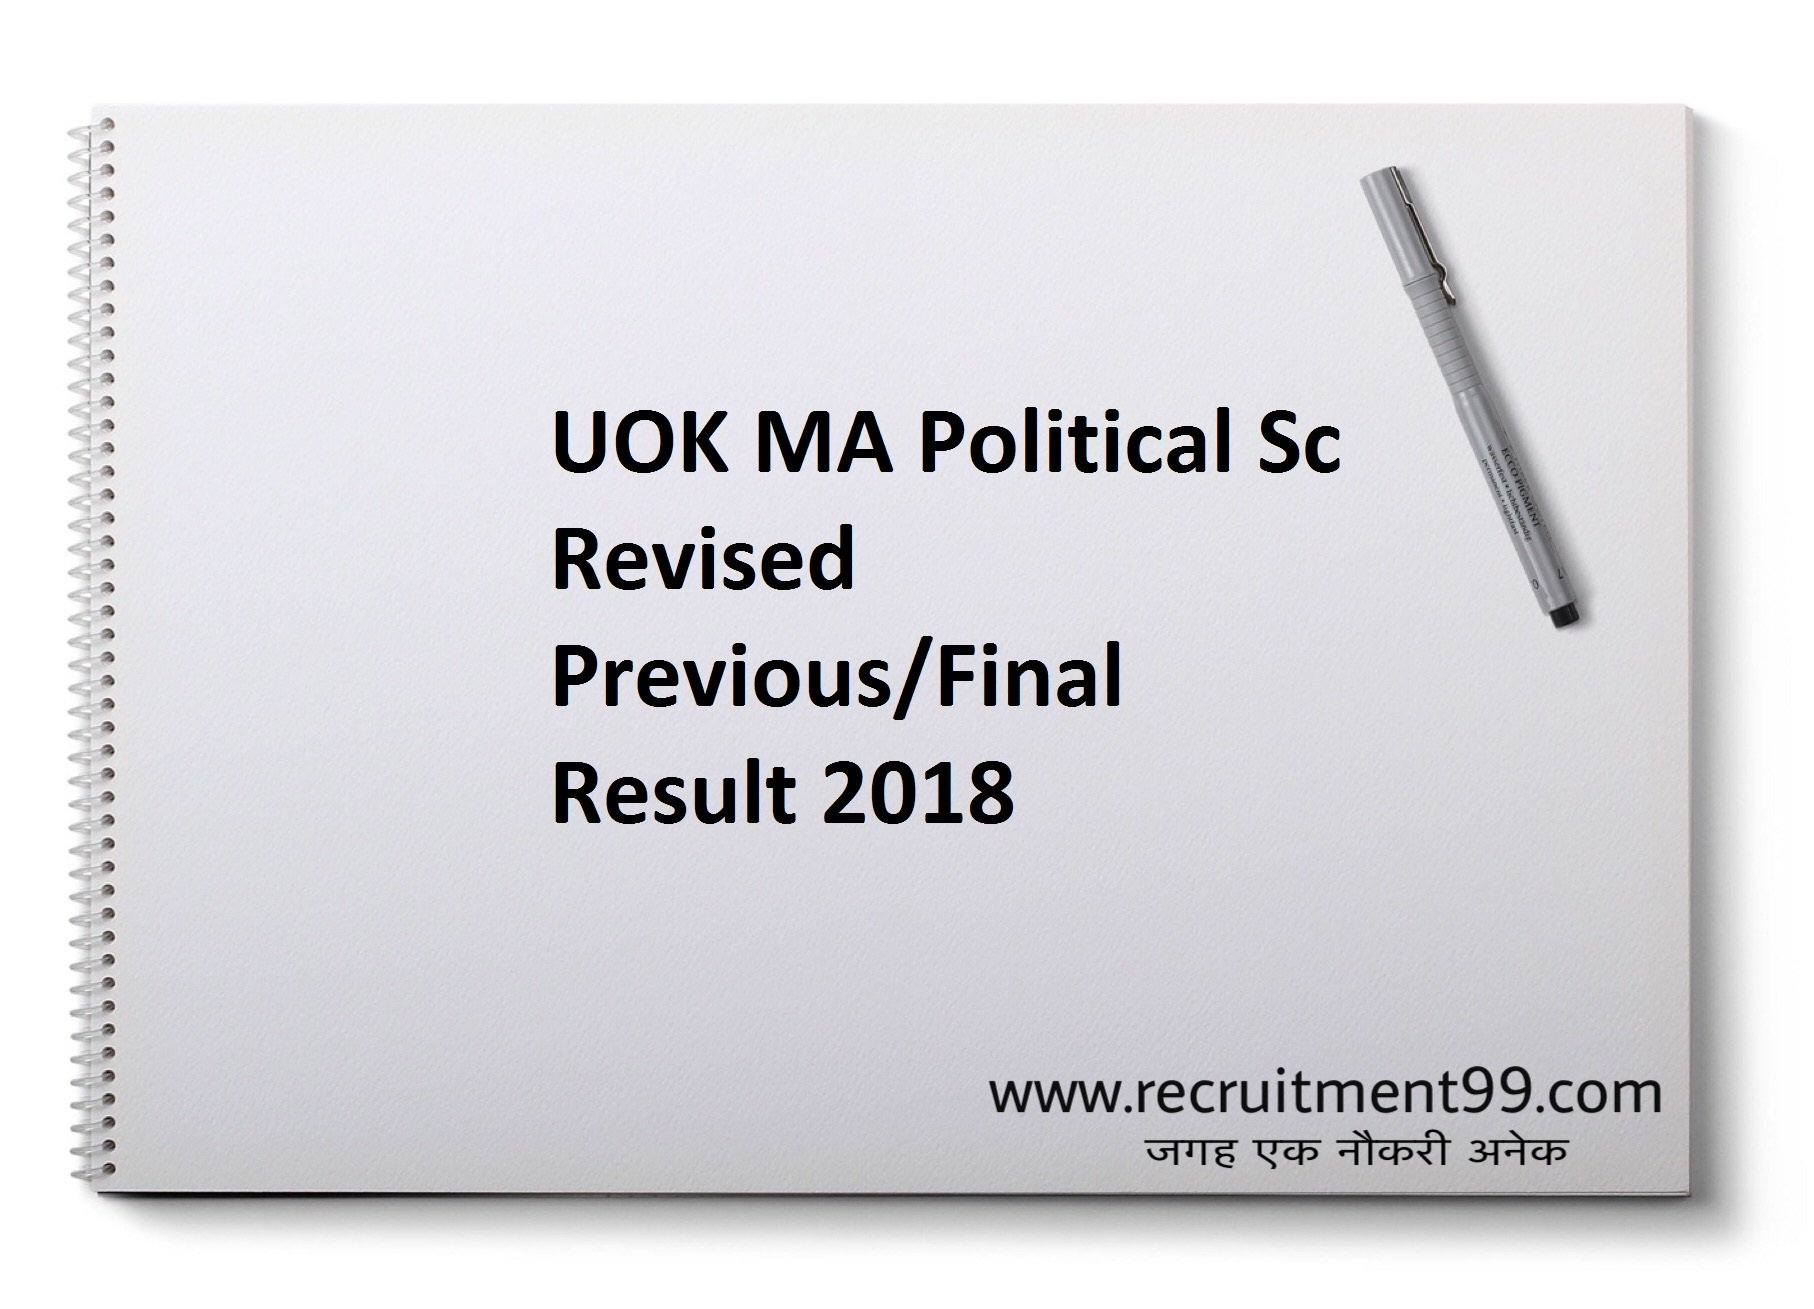 UOK MA Political Sc Revised Previous/Final Result 2018